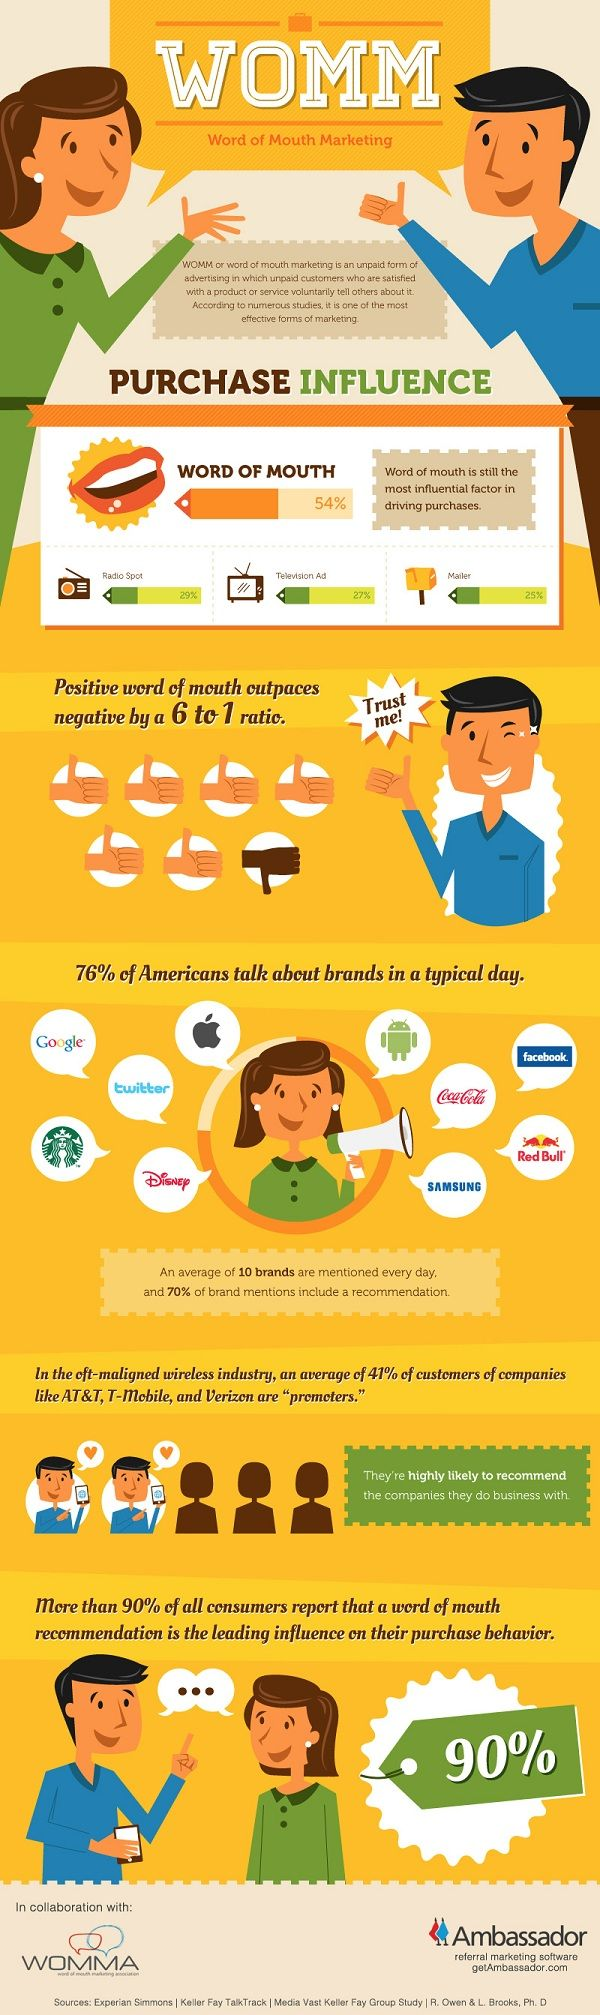 Cute #infographic about #WordofMouthMarketing.